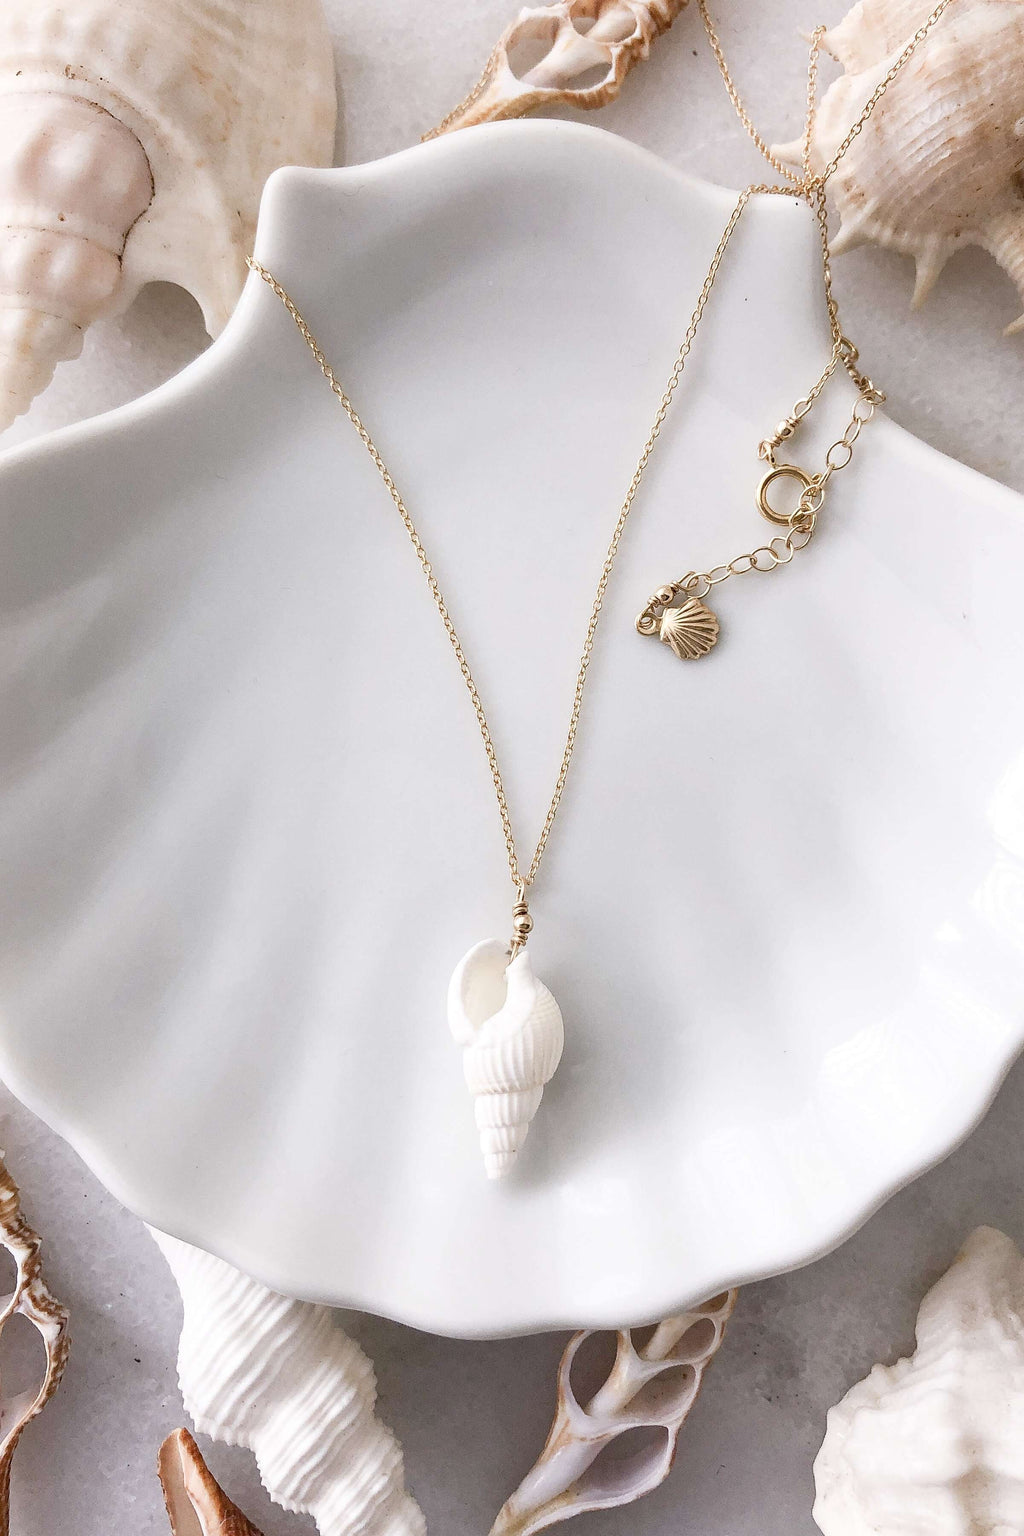 Cone Shell Necklace - Gold Fill, Necklace with  by Lunarsea Designs